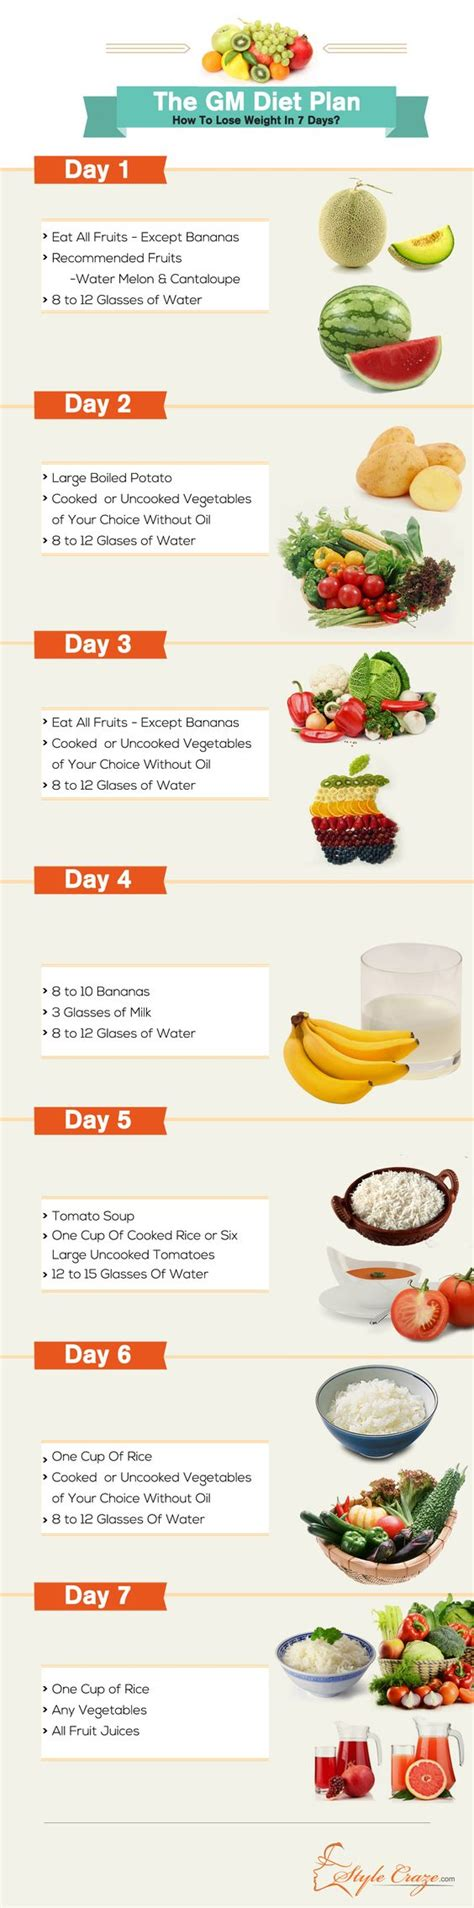 Lose Weight By Detox Diet by The Gm Diet Plan How To Lose Weight In Just 7 Days